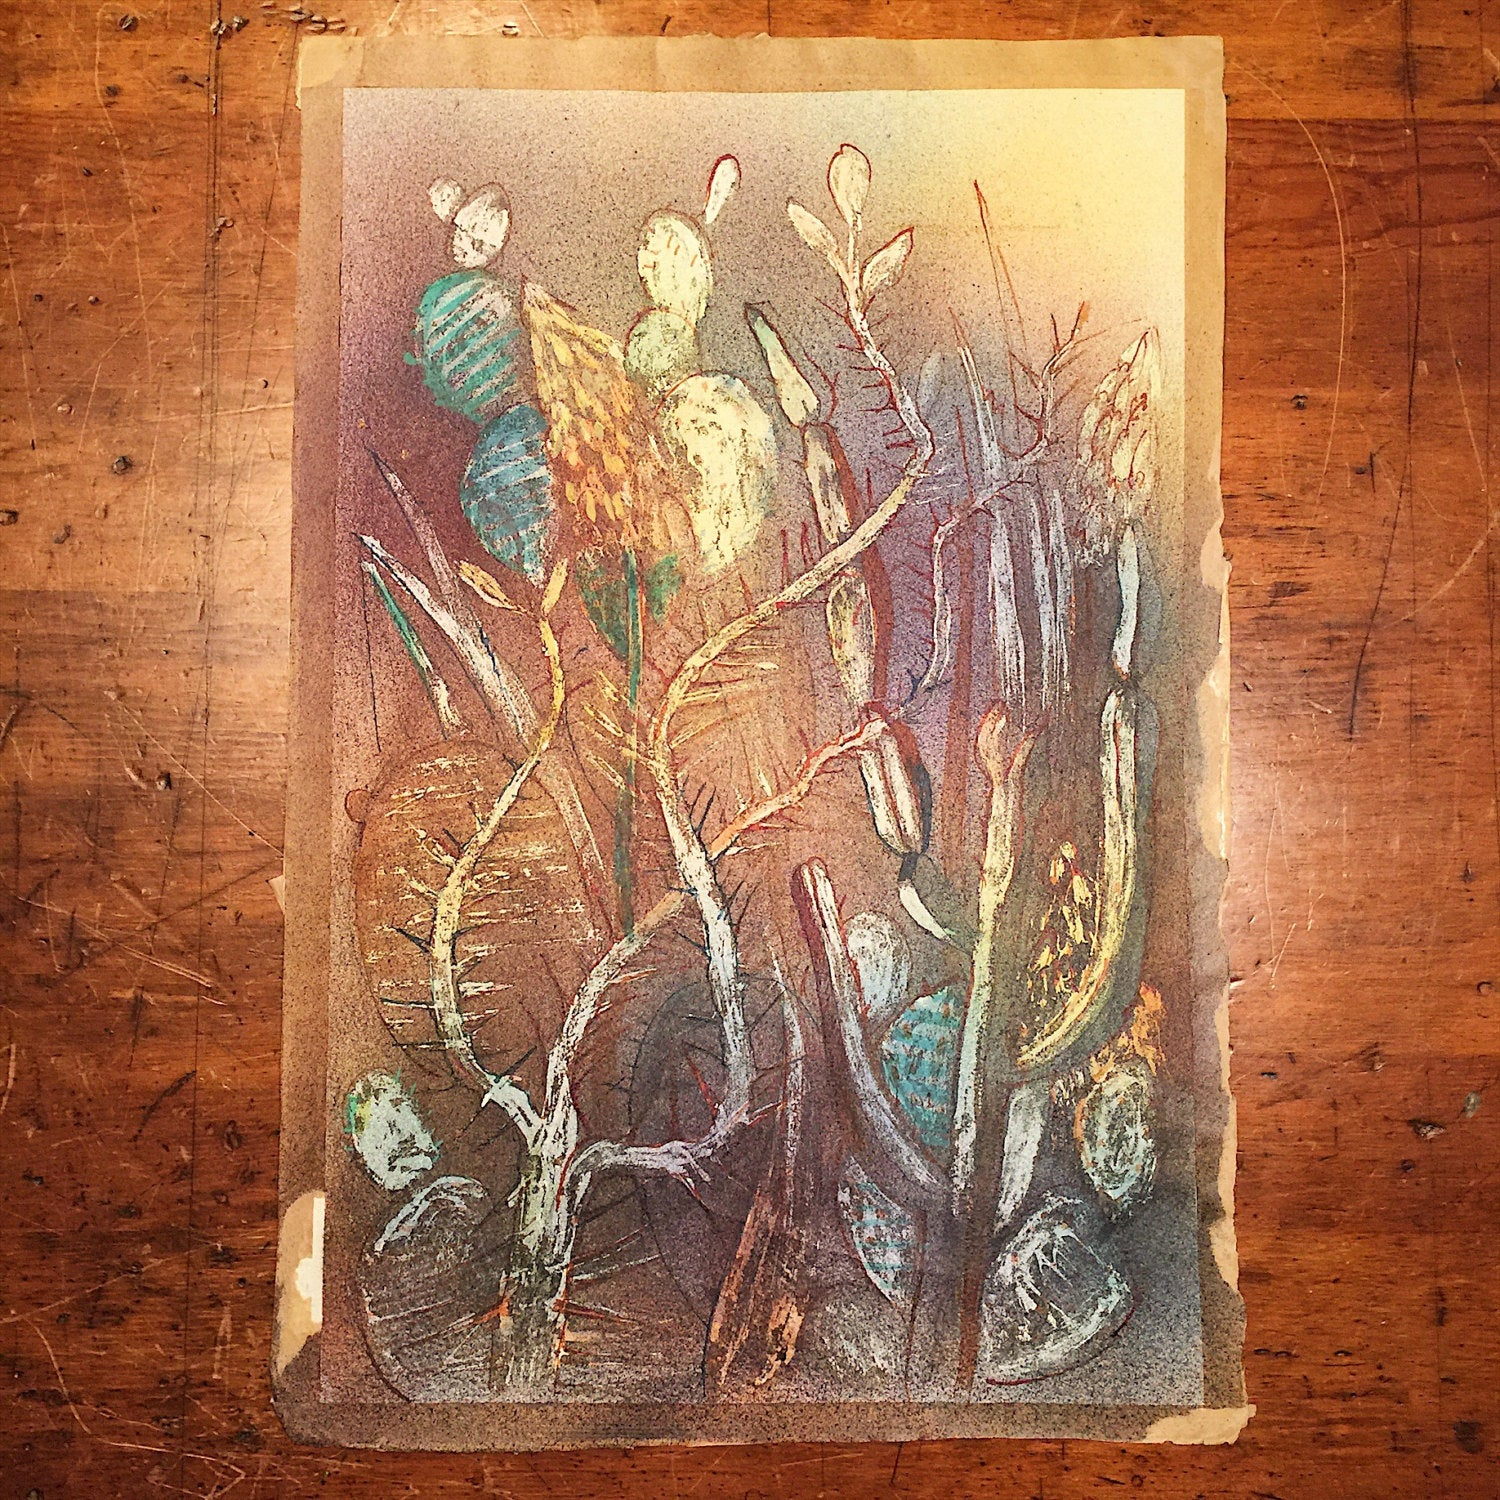 "Vintage Ink Resist Paintings - 1954 - Signed ""Parlin"" - Set of 2 - Watermarked - Unframed - Mystery Artist - Art Nouveau - Psychedelic"